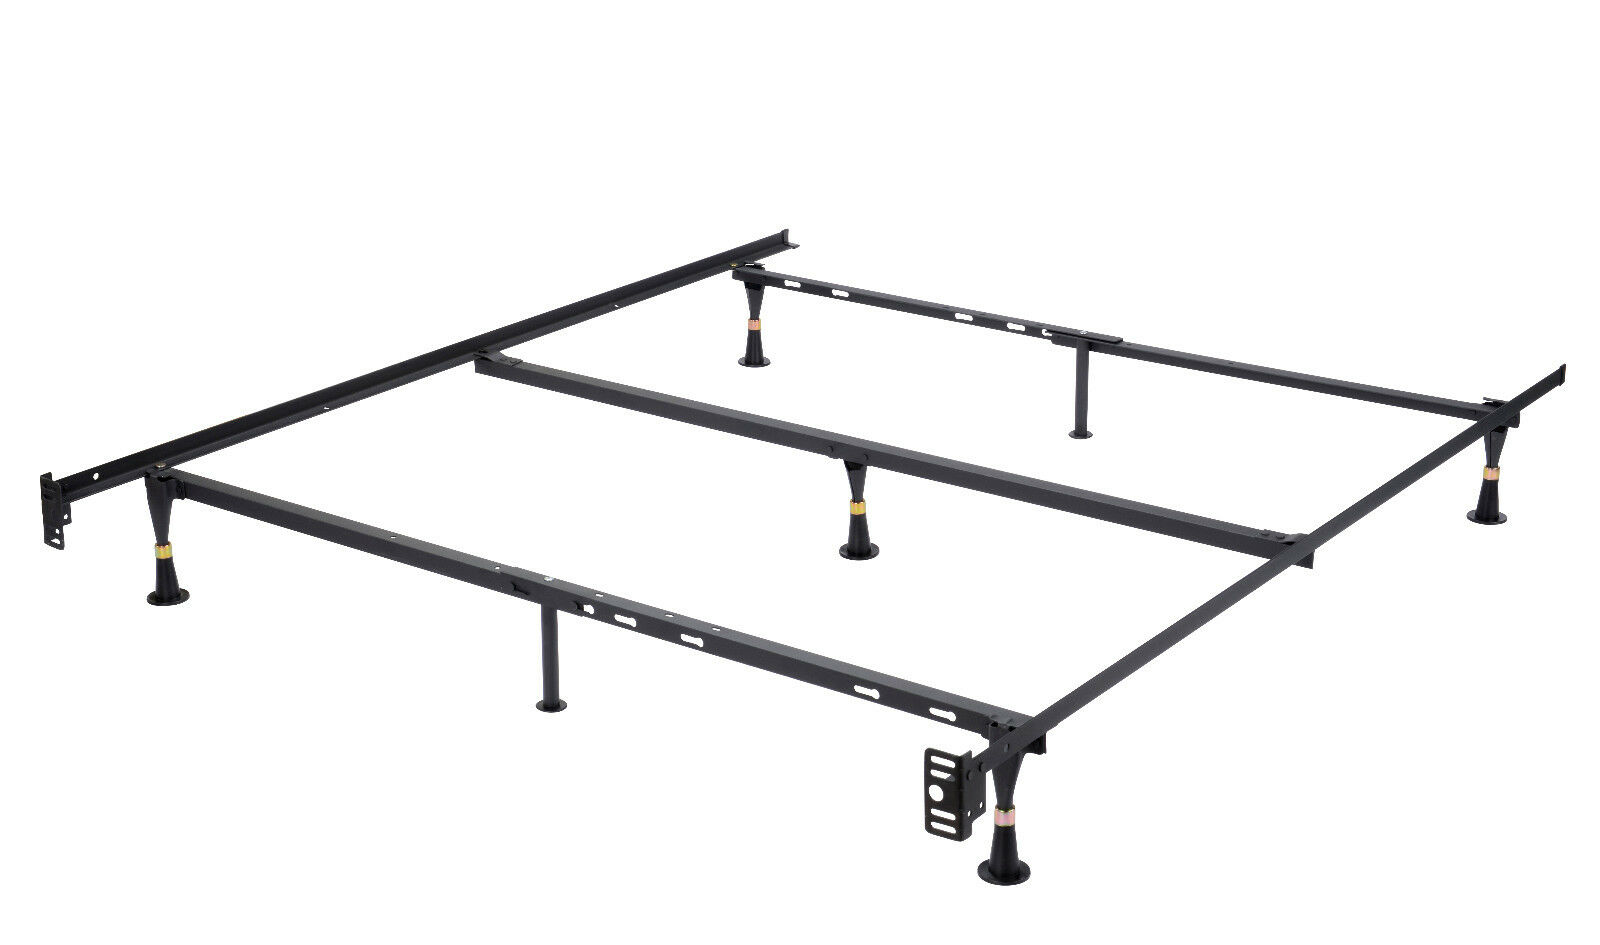 7-Leg Heavy Duty Metal Queen Size Bed Frame With Center